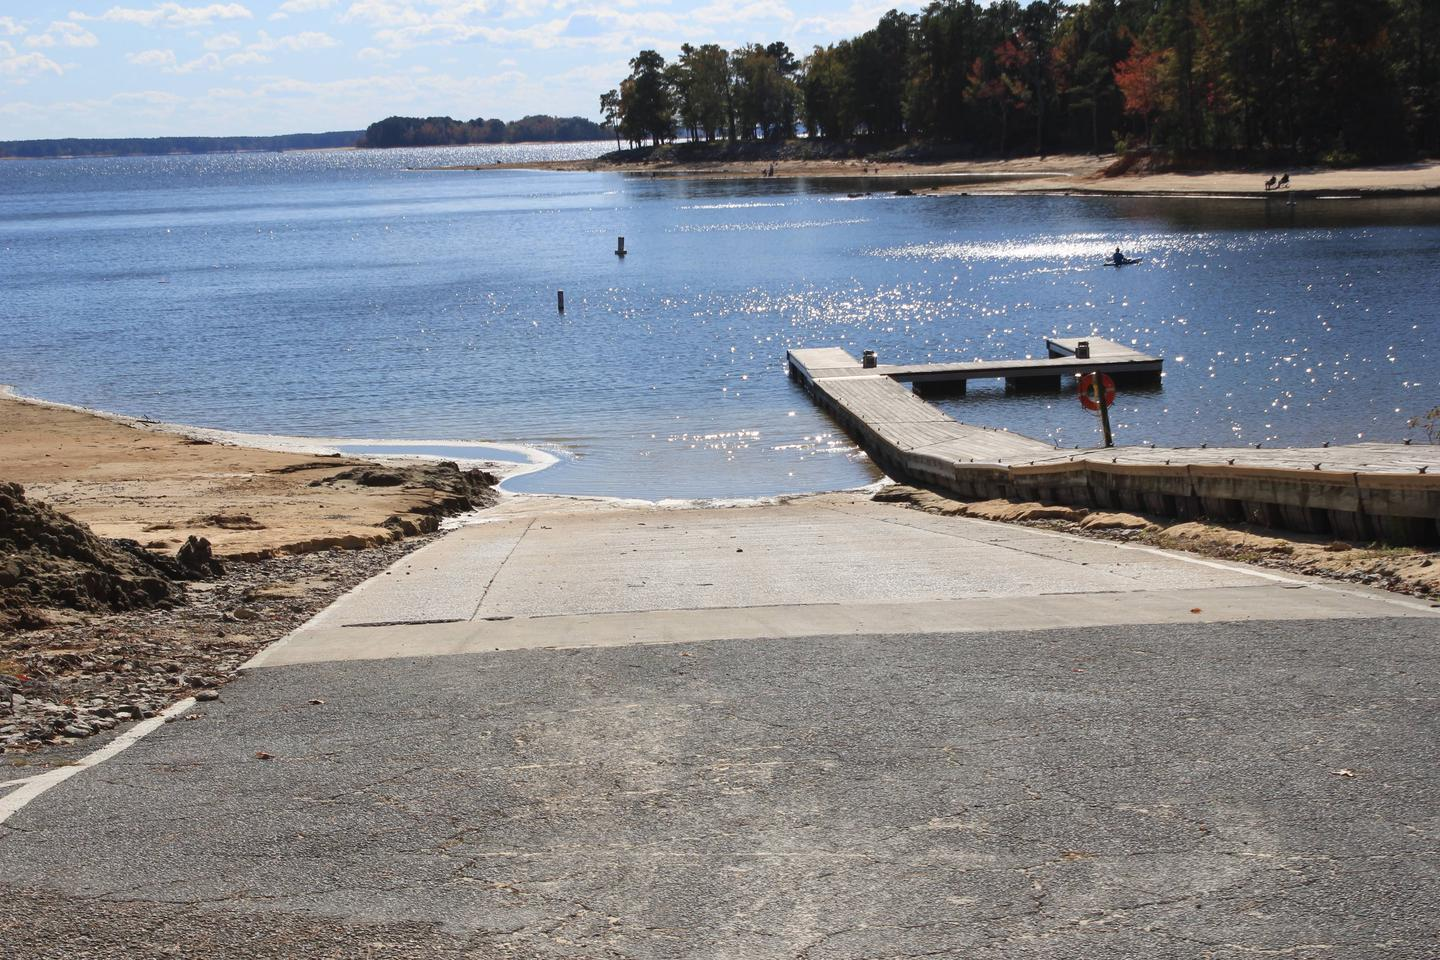 NBP Main Boat RampWelcome to North Bend Park! This is the main boat ramp located in North Bend Park. This boat ramp is open to the public.